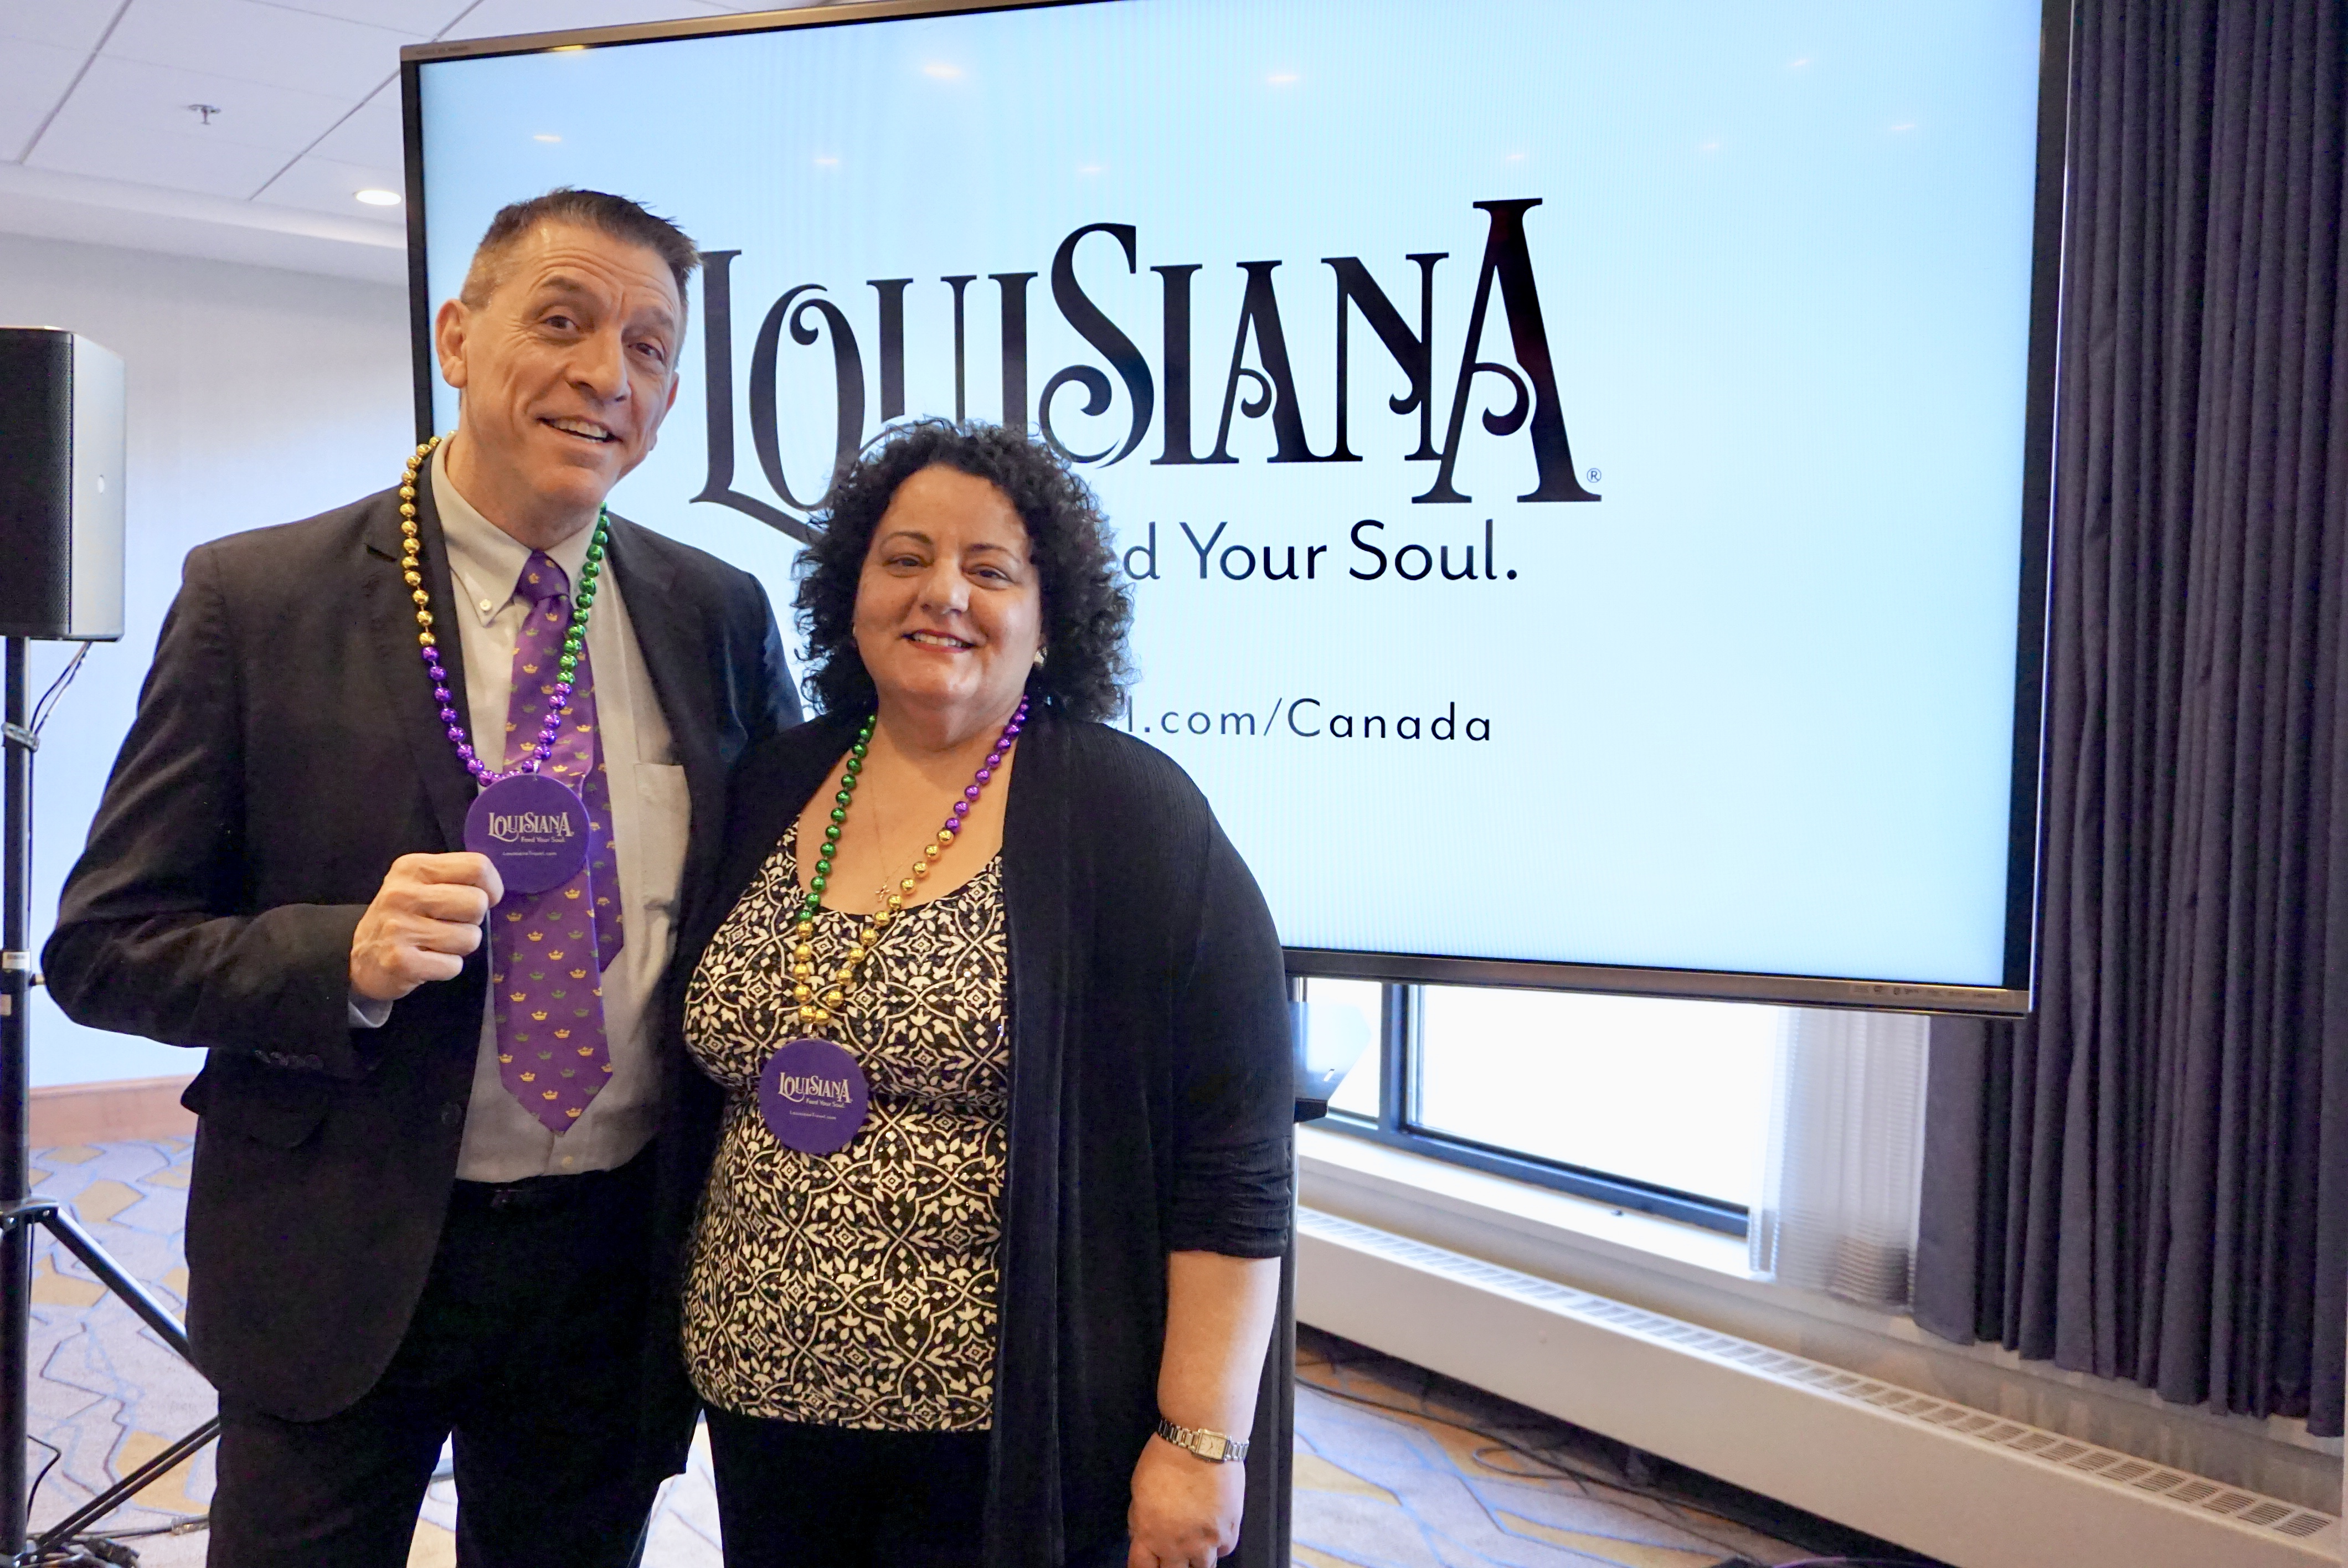 Michael Prejean, international manager, Louisiana Office of Tourism; Joanne Scalamogna, Canadian representative Louisiana Office of Tourism